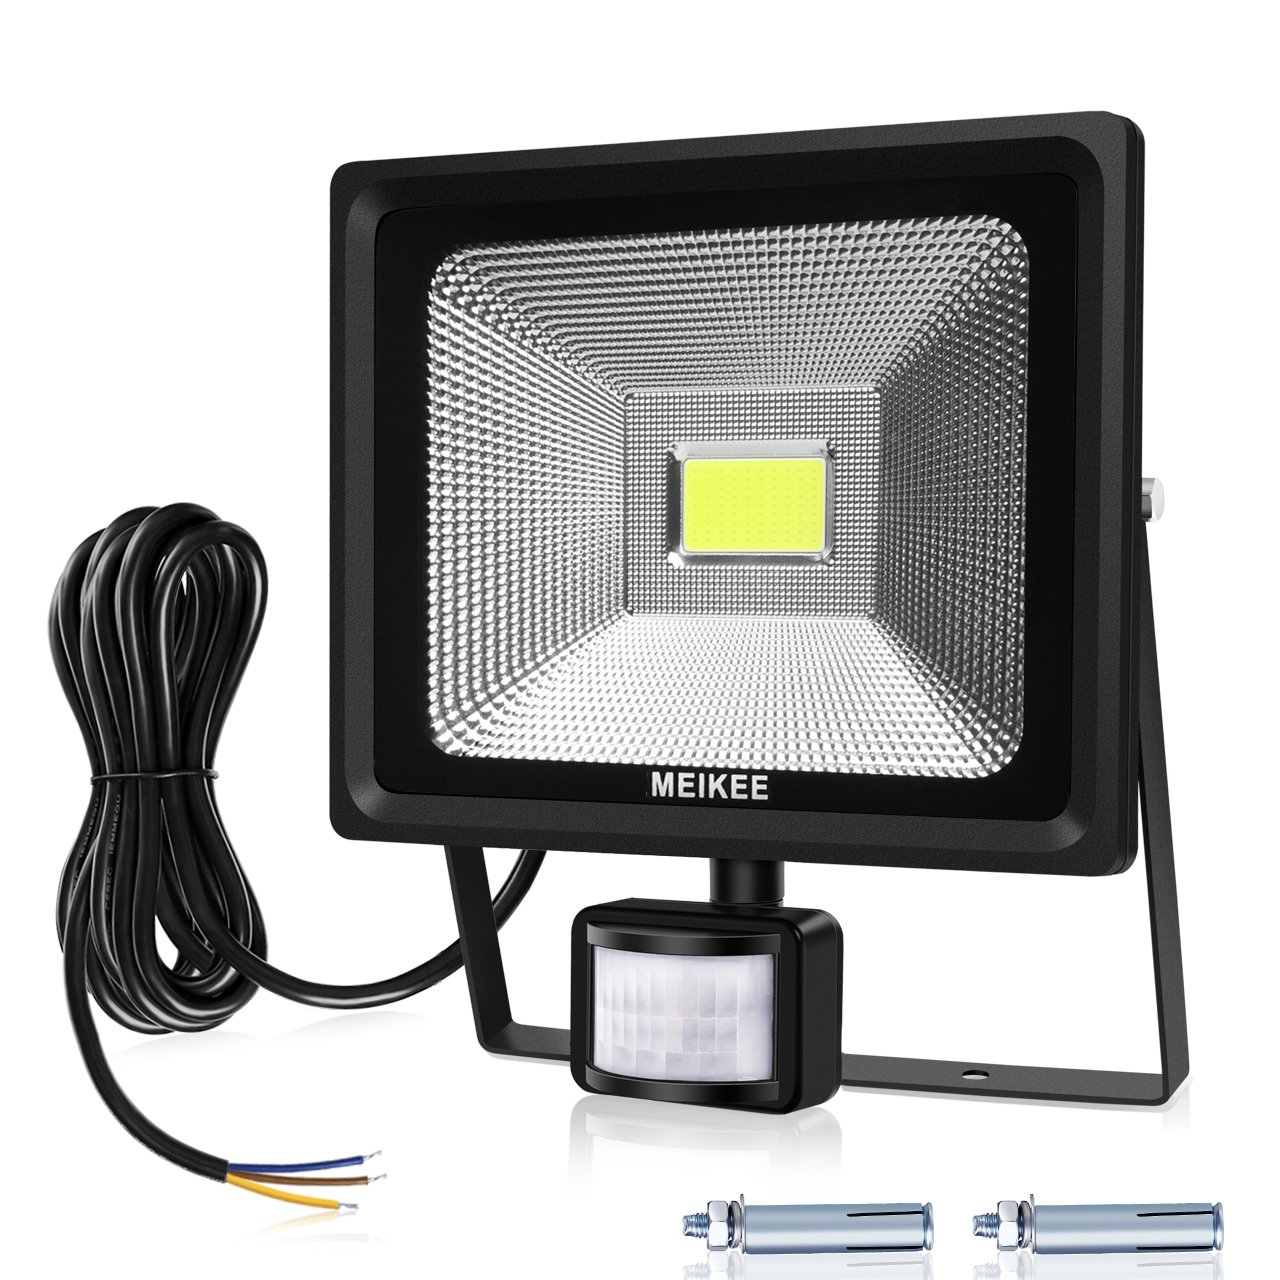 MEIKEE 30W Security Lights with Motion Sensor, Waterproof IP66 LED Floodlights, LED Sensor Outdoor Light, High Output 3000 Lumen 75W HPS Lights Equivalent Replaced, Super Bright PIR Flood light, Ideal for Garden, Car Park, Hotel and Yard, Daylight White [